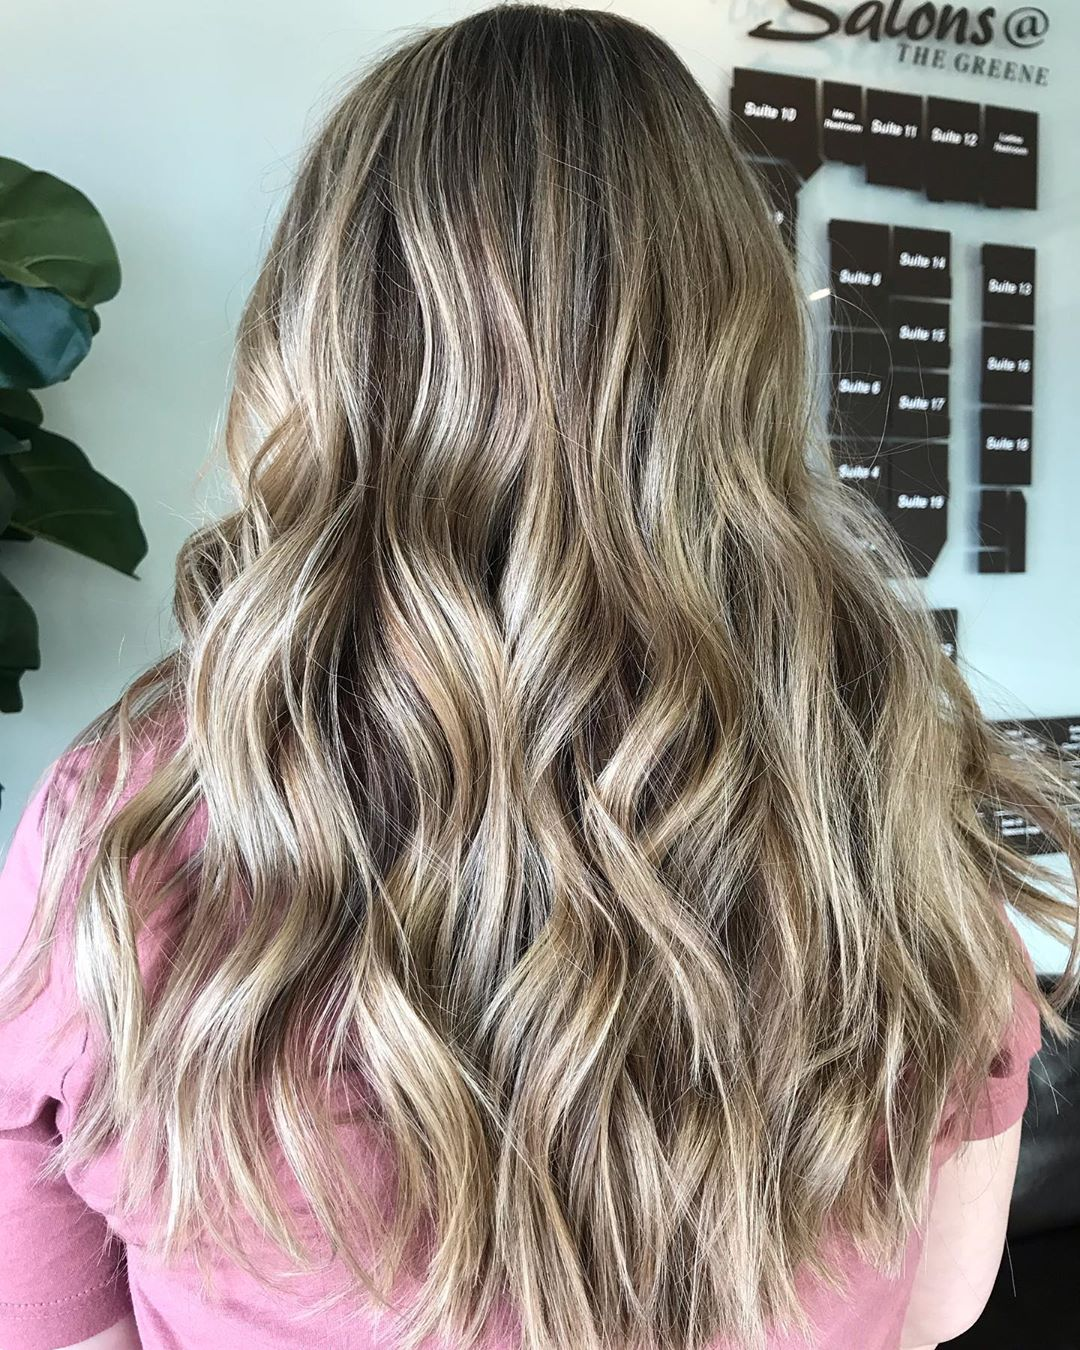 Wave blonde hair with brown lowlights added